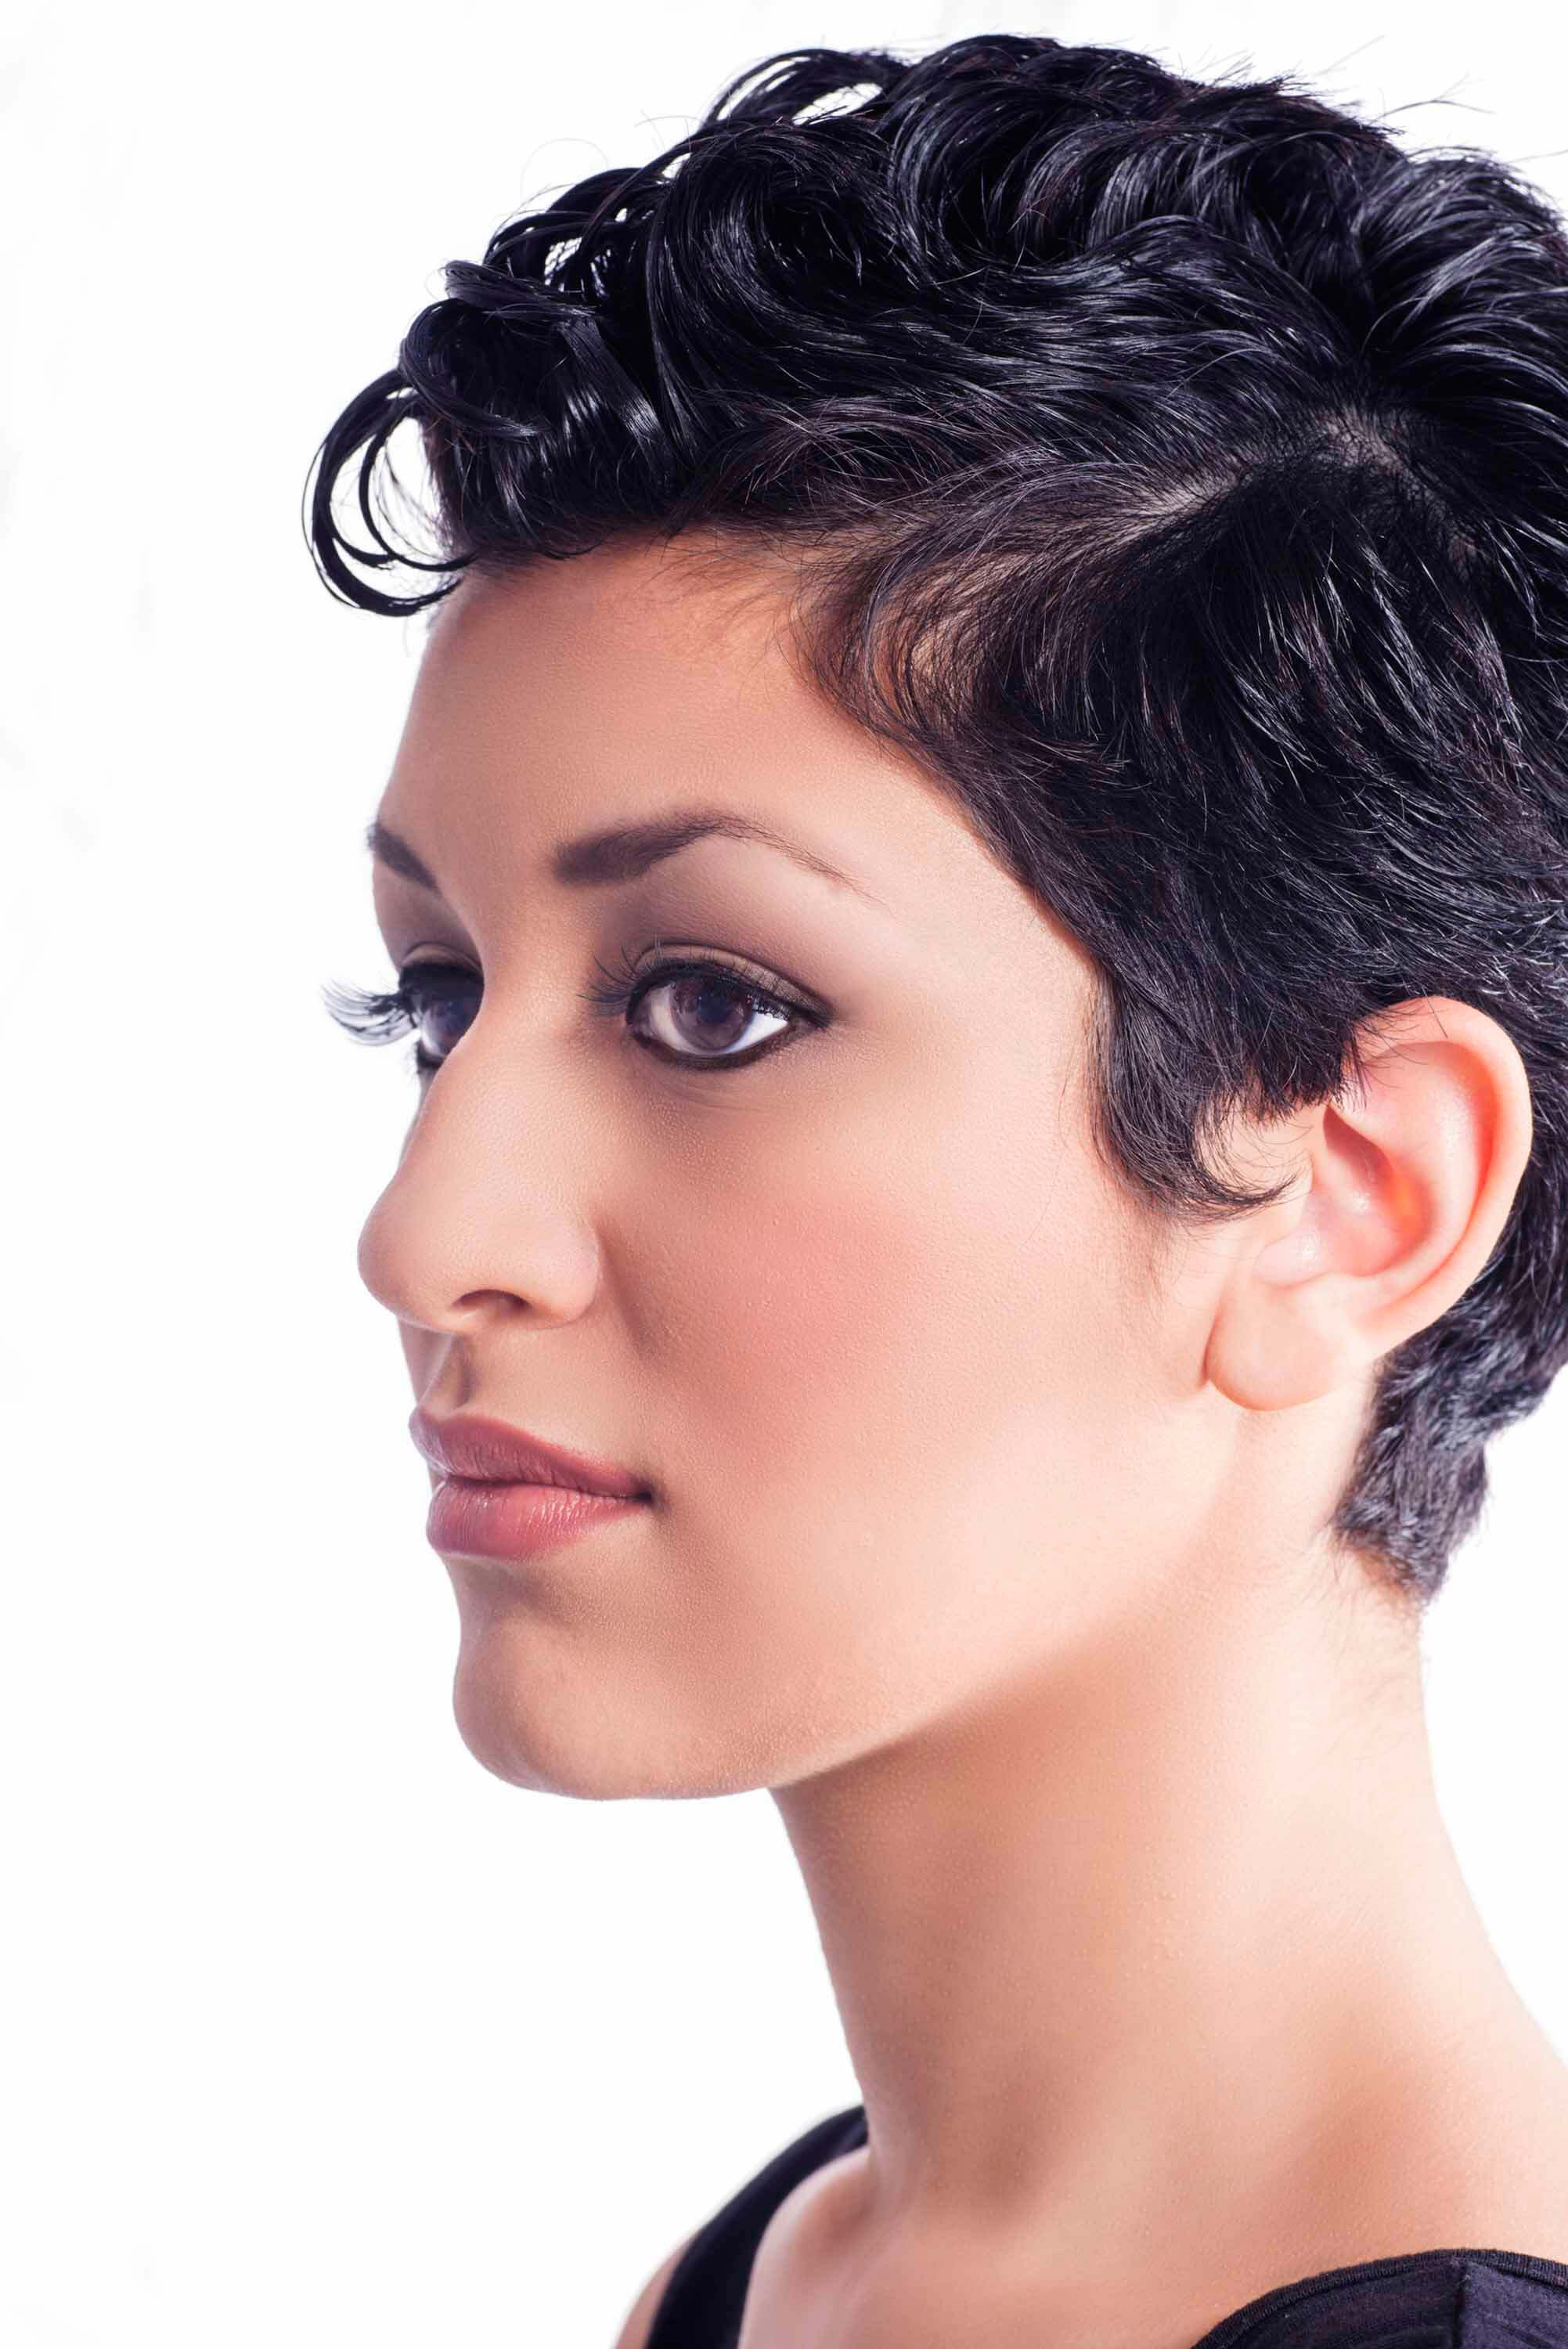 best way to style hair style pixie cuts hair tips and advice to make the most 3975